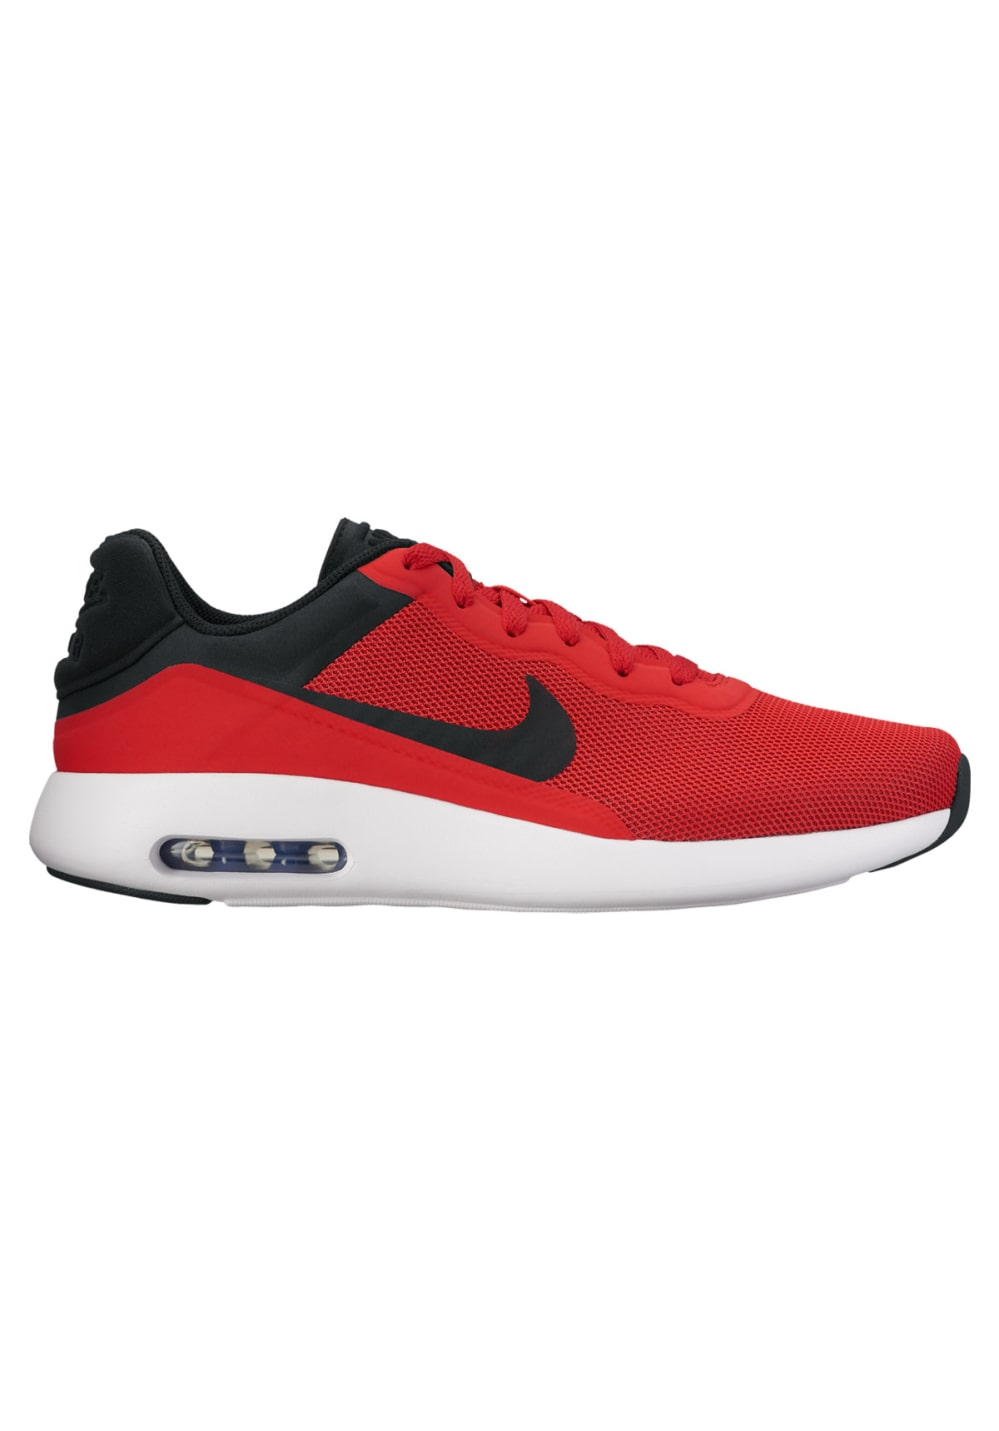 newest 56c81 54eb3 ... Nike Air Max Modern Essential - Sneaker for Men - Red. Back to  Overview. 1  2. Previous